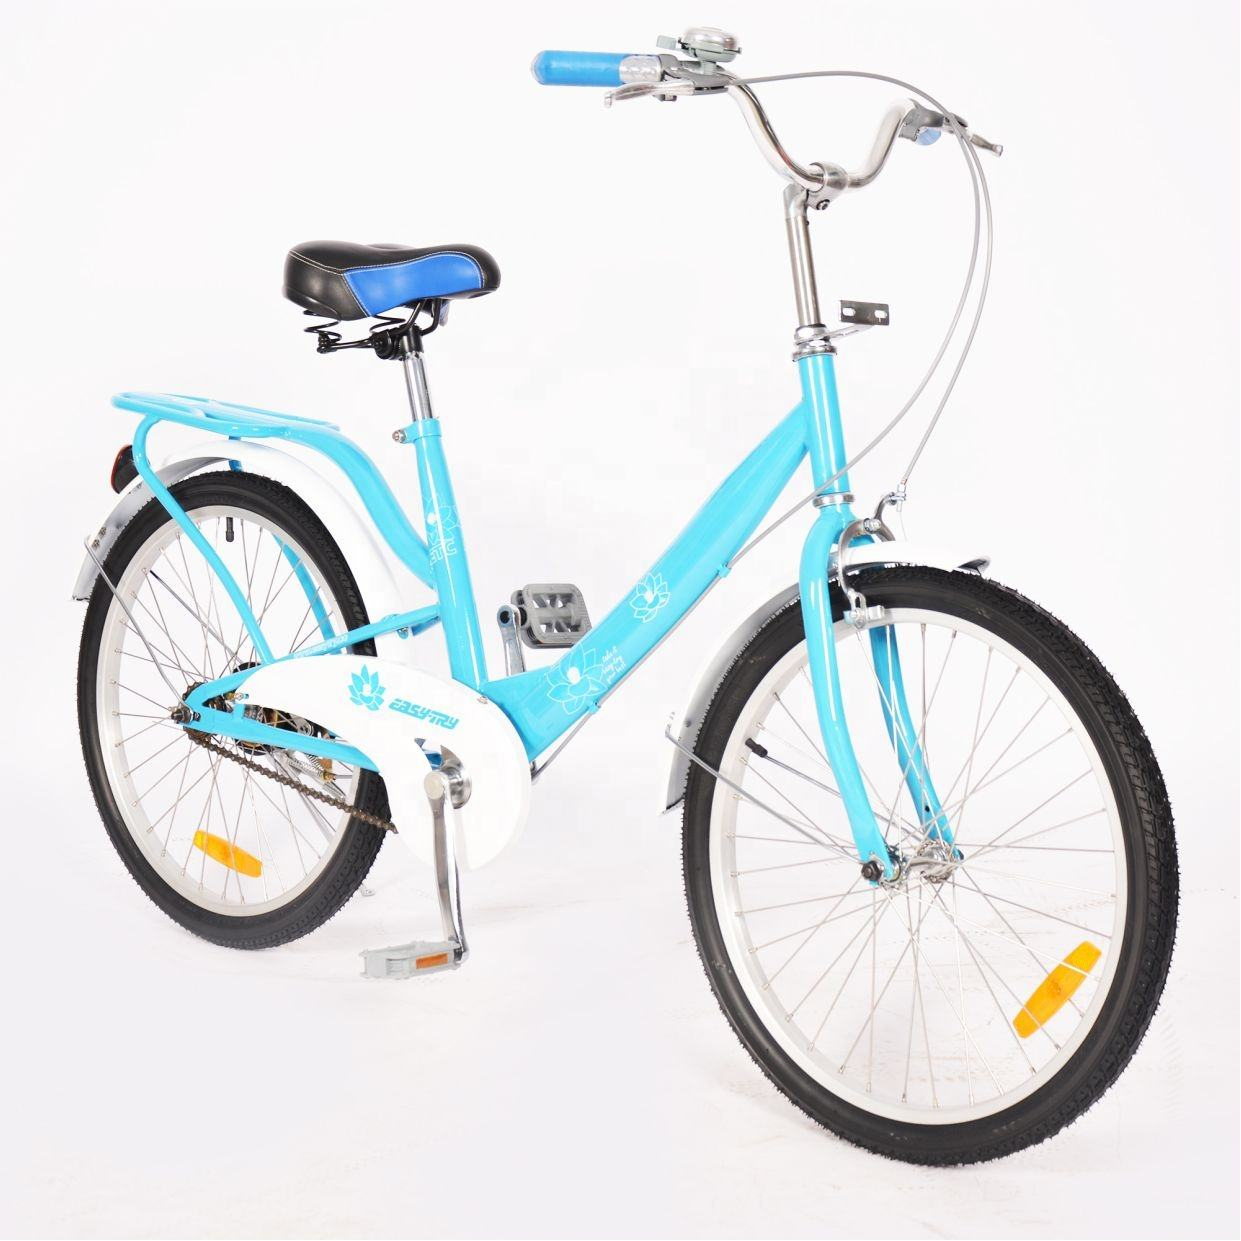 lady comfort city bike classic bicycle bikes for girls and women